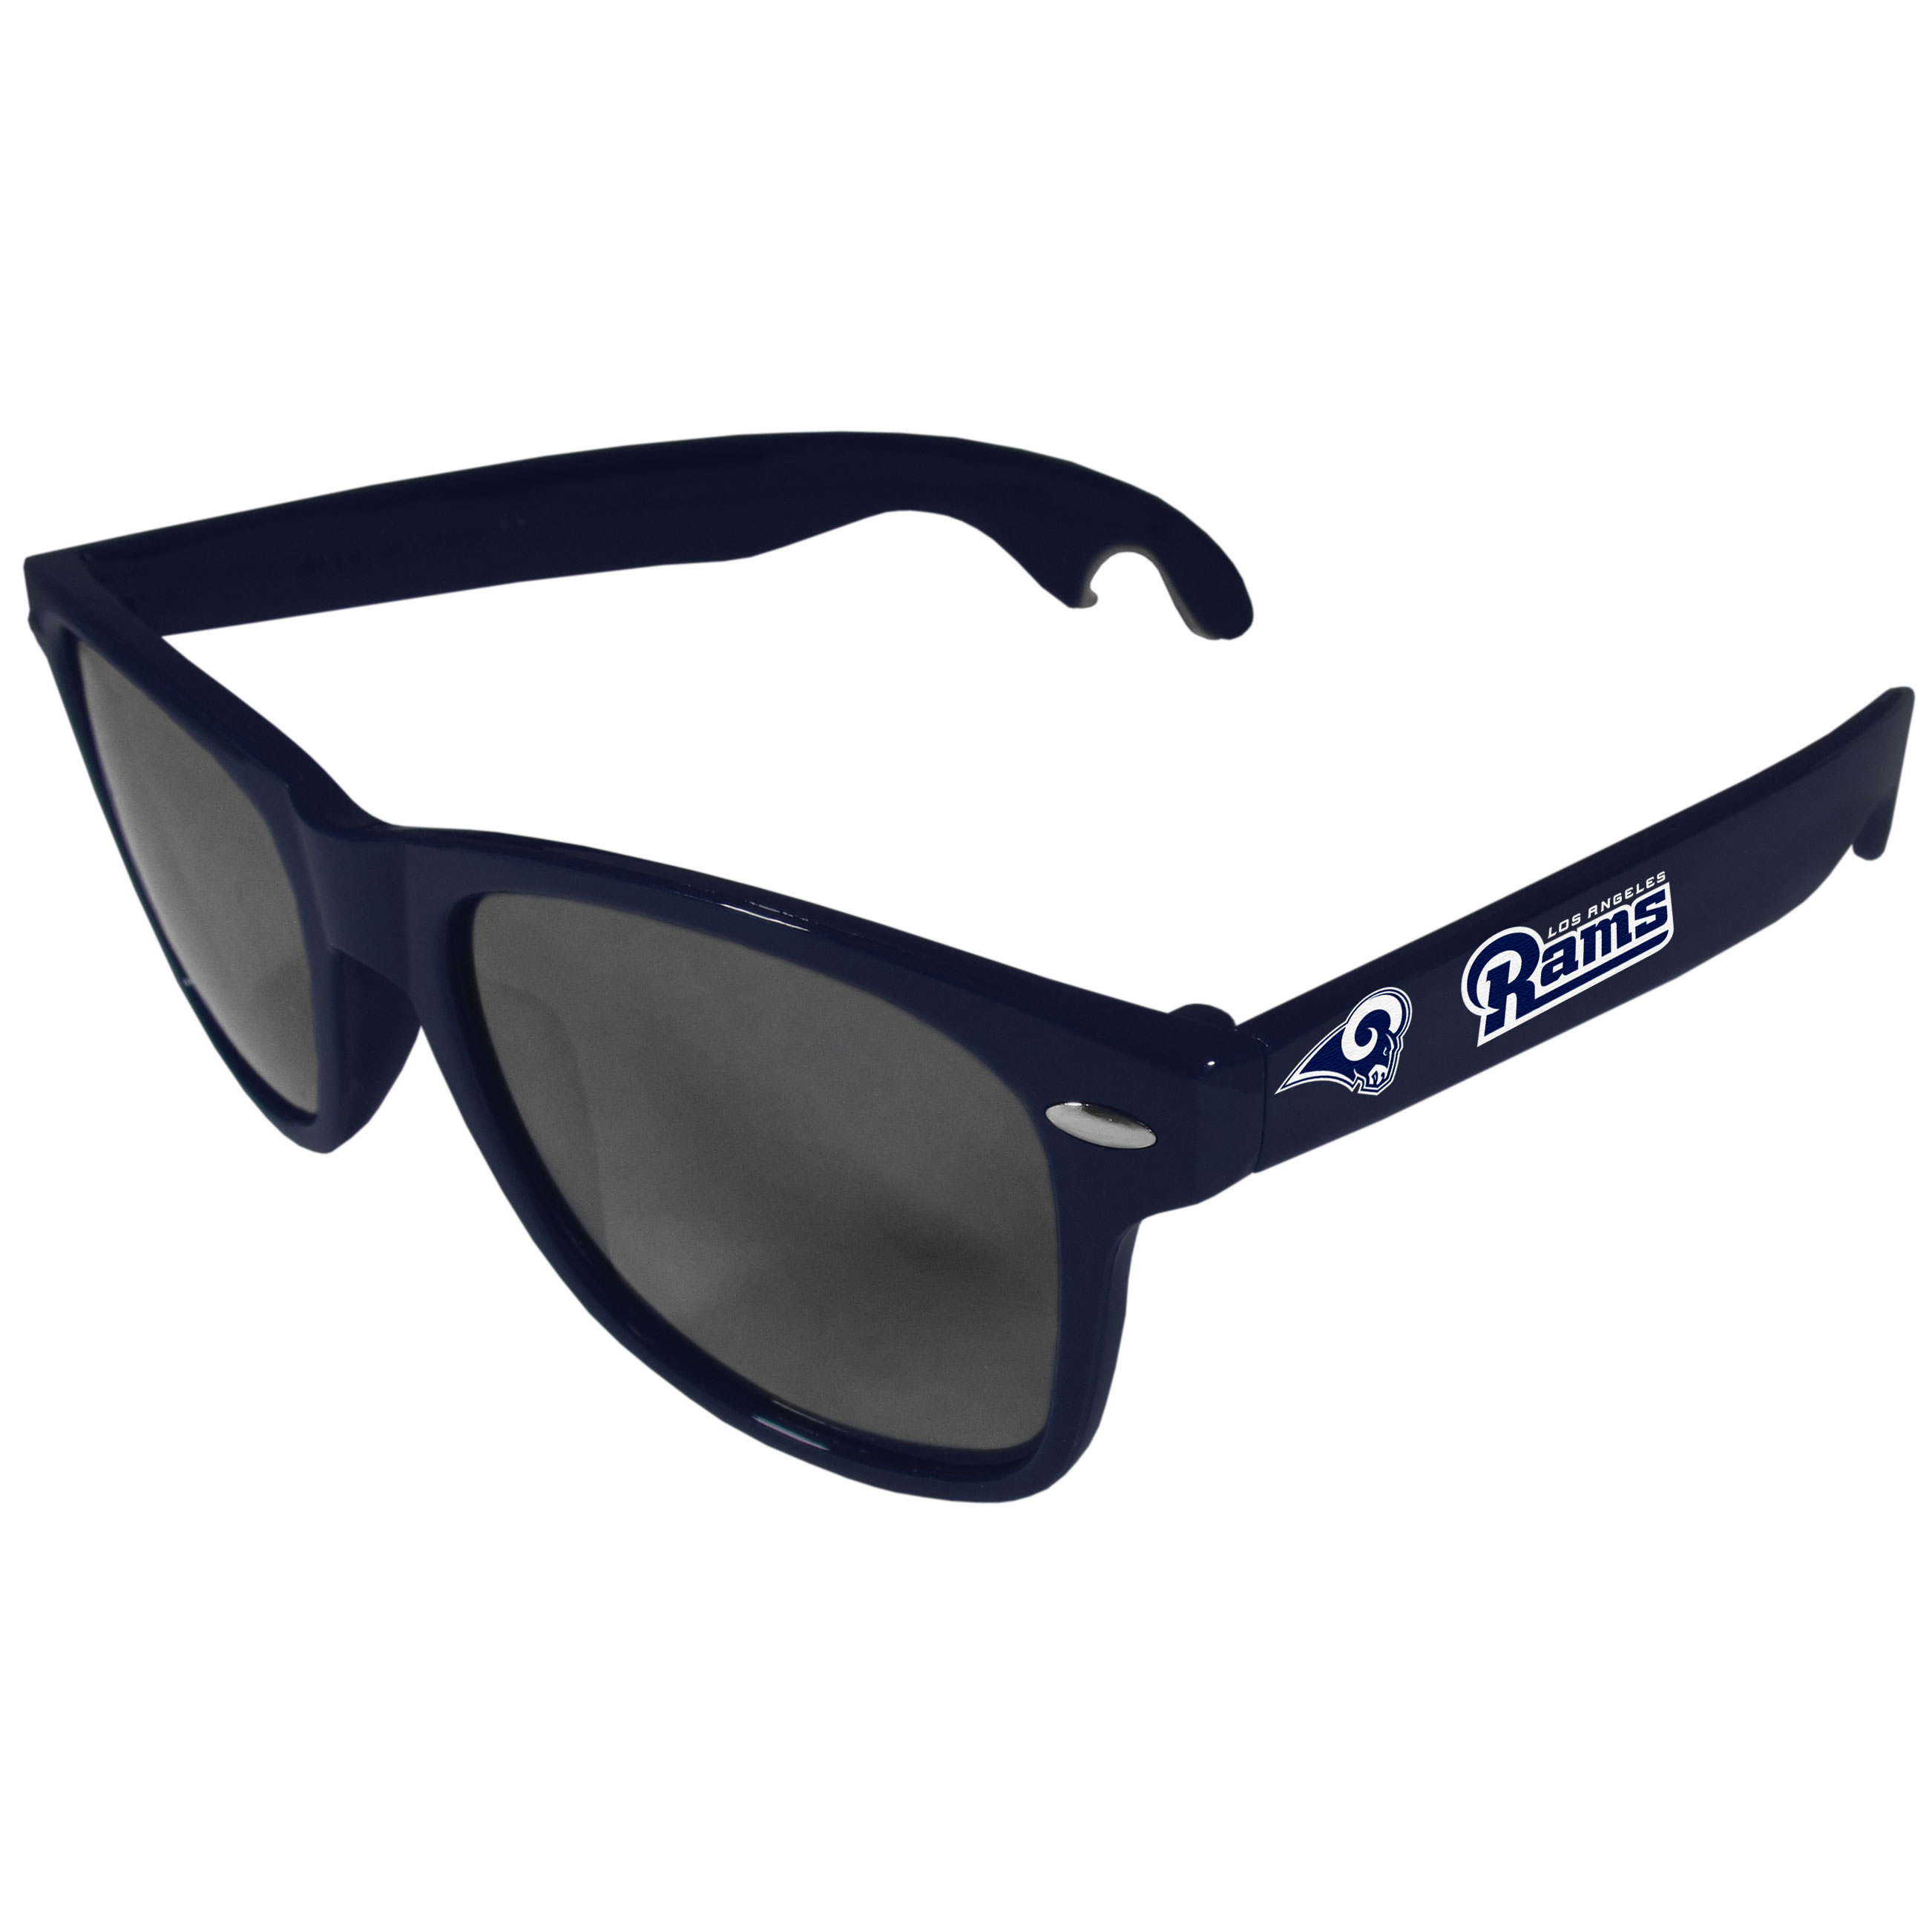 Los Angeles Rams Beachfarer Bottle Opener Sunglasses, Dark Blue - Seriously, these sunglasses open bottles! Keep the party going with these amazing Los Angeles Rams bottle opener sunglasses. The stylish retro frames feature team designs on the arms and functional bottle openers on the end of the arms. Whether you are at the beach or having a backyard BBQ on game day, these shades will keep your eyes protected with 100% UVA/UVB protection and keep you hydrated with the handy bottle opener arms.